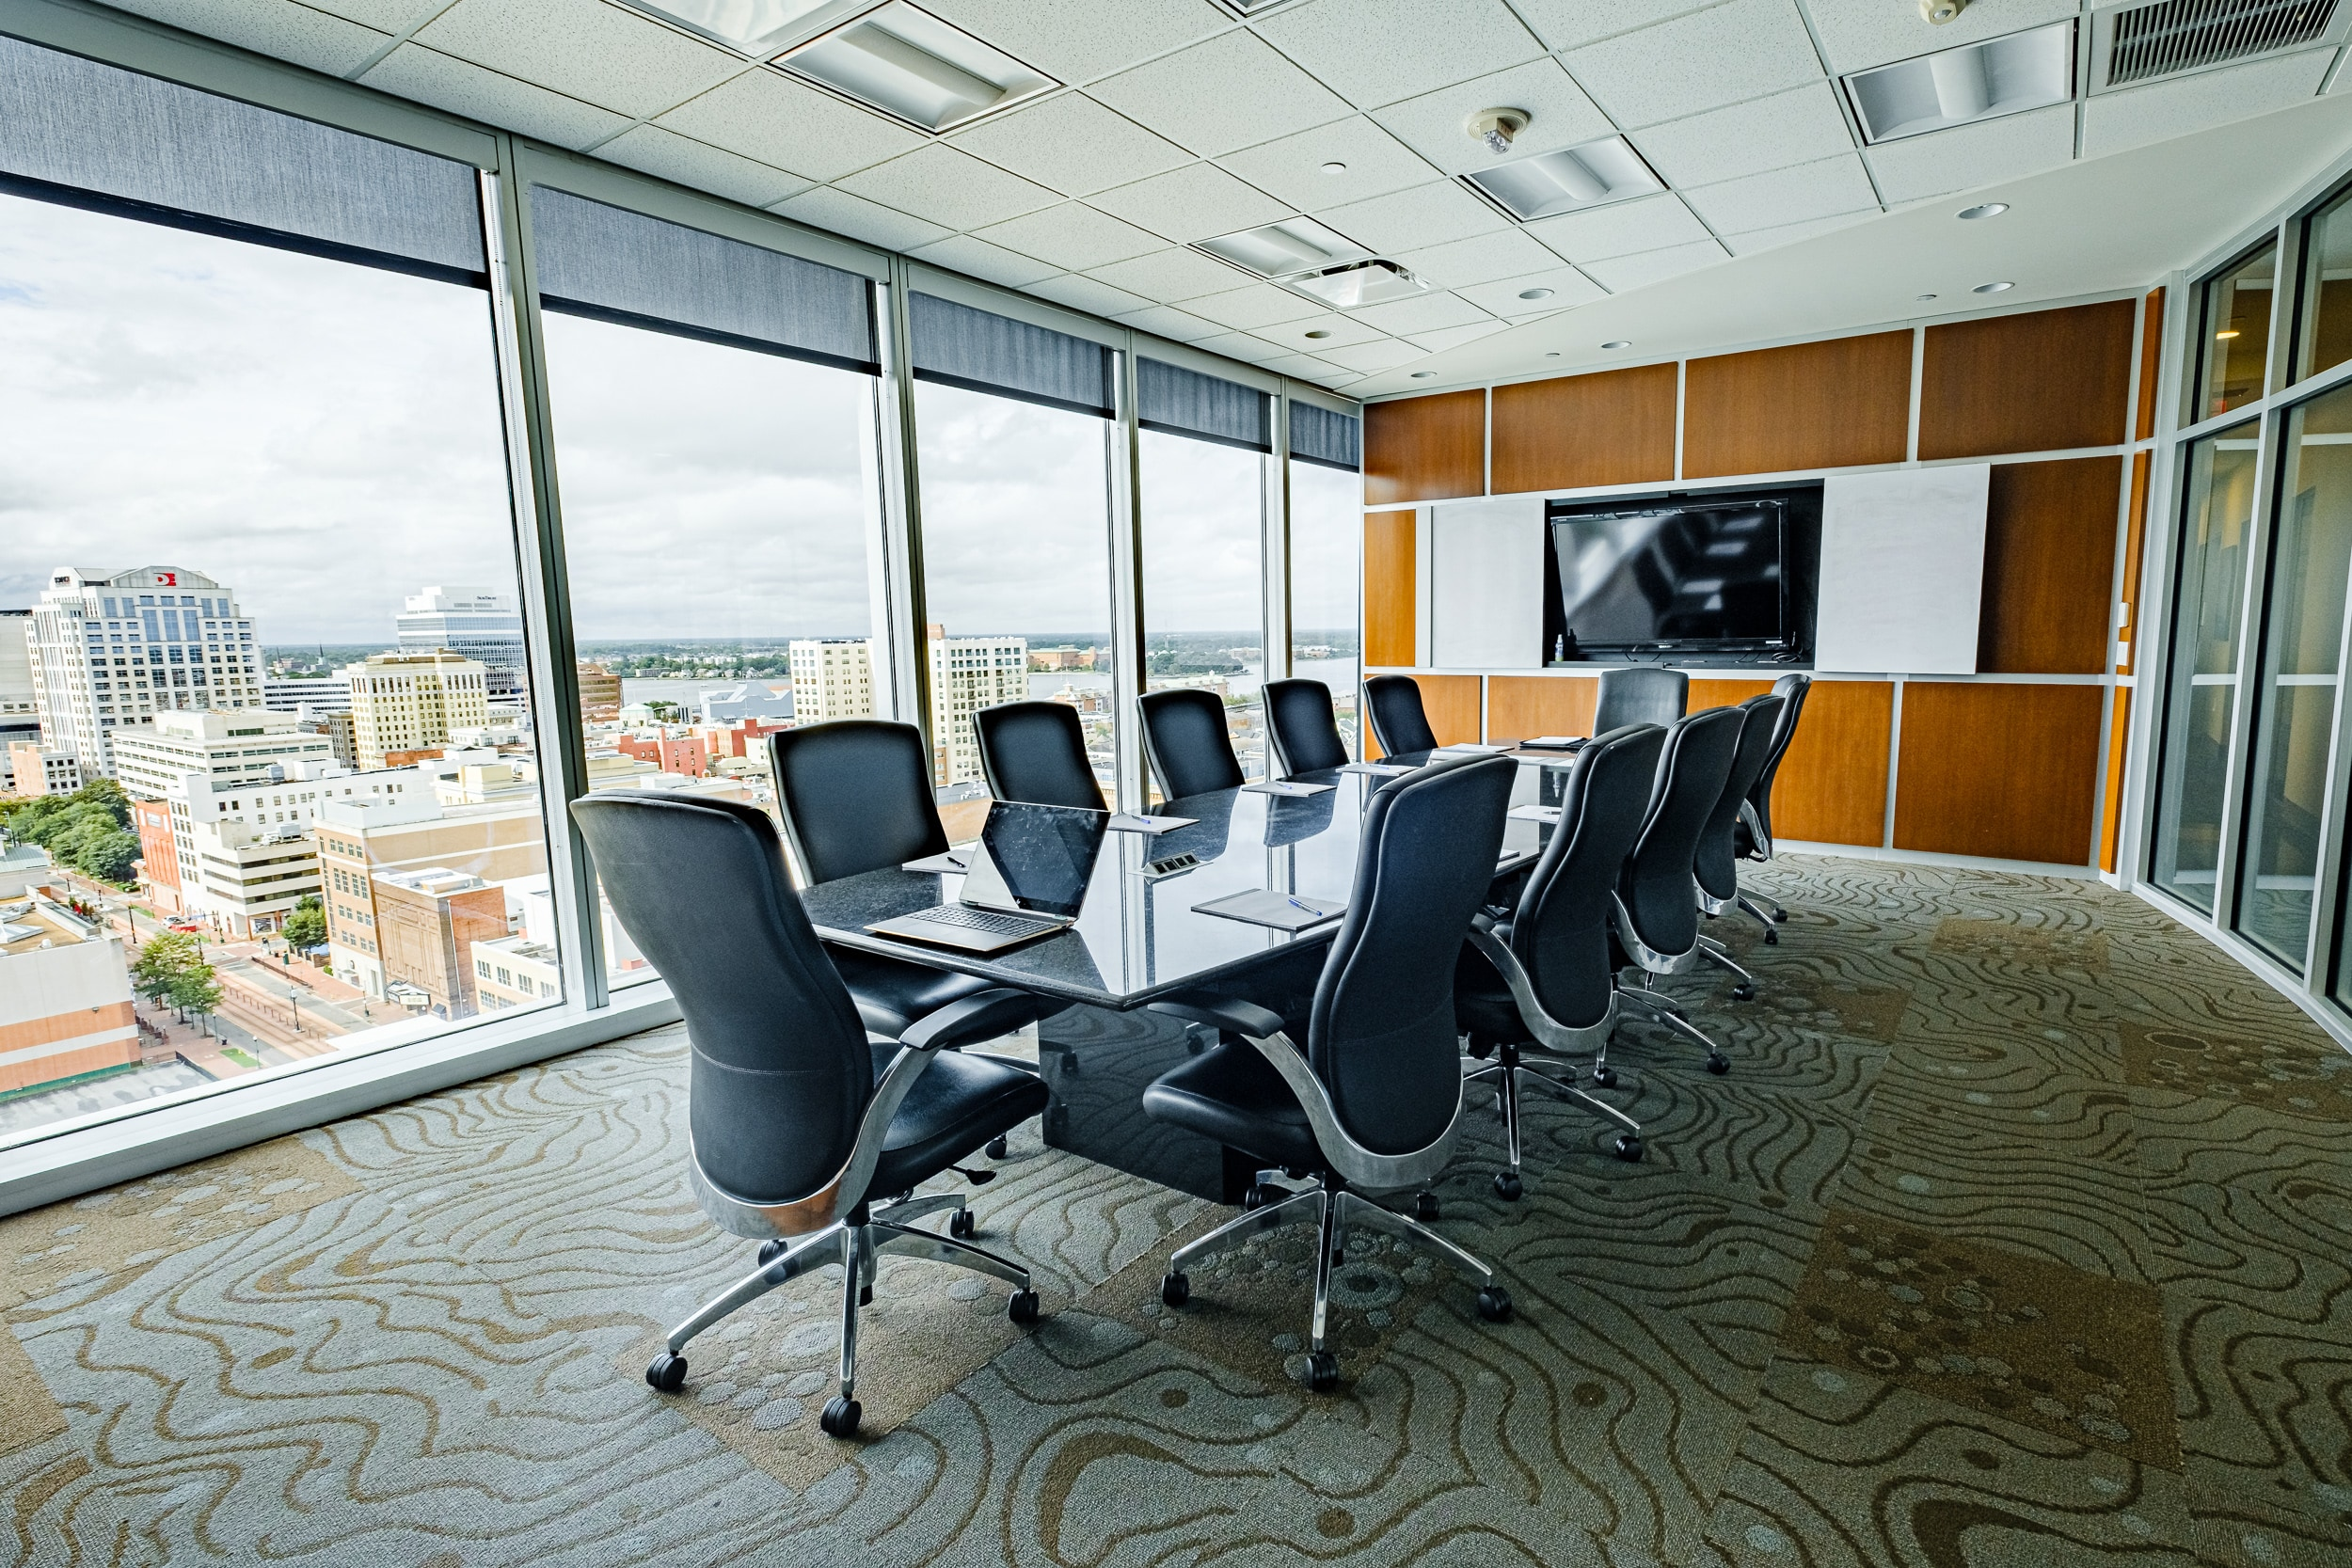 OSS Conference Room Wells Fargo Center. Full room view; displaying glass wall with beautiful view, modern decor and audio/visual wall.